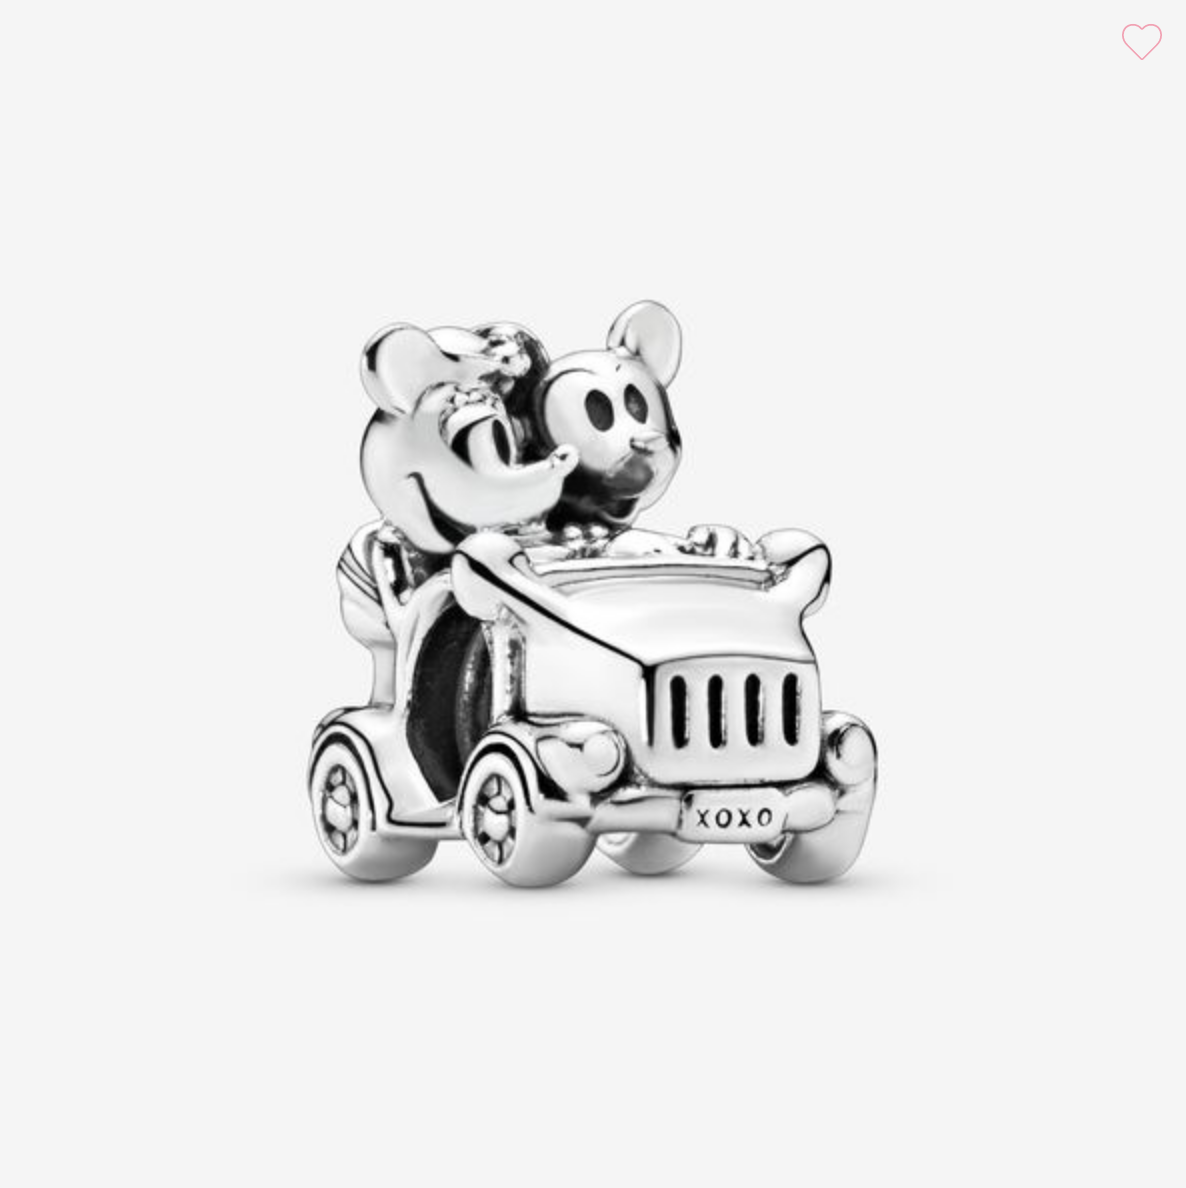 Disney, L'Auto di Mickey Mouse & Minnie